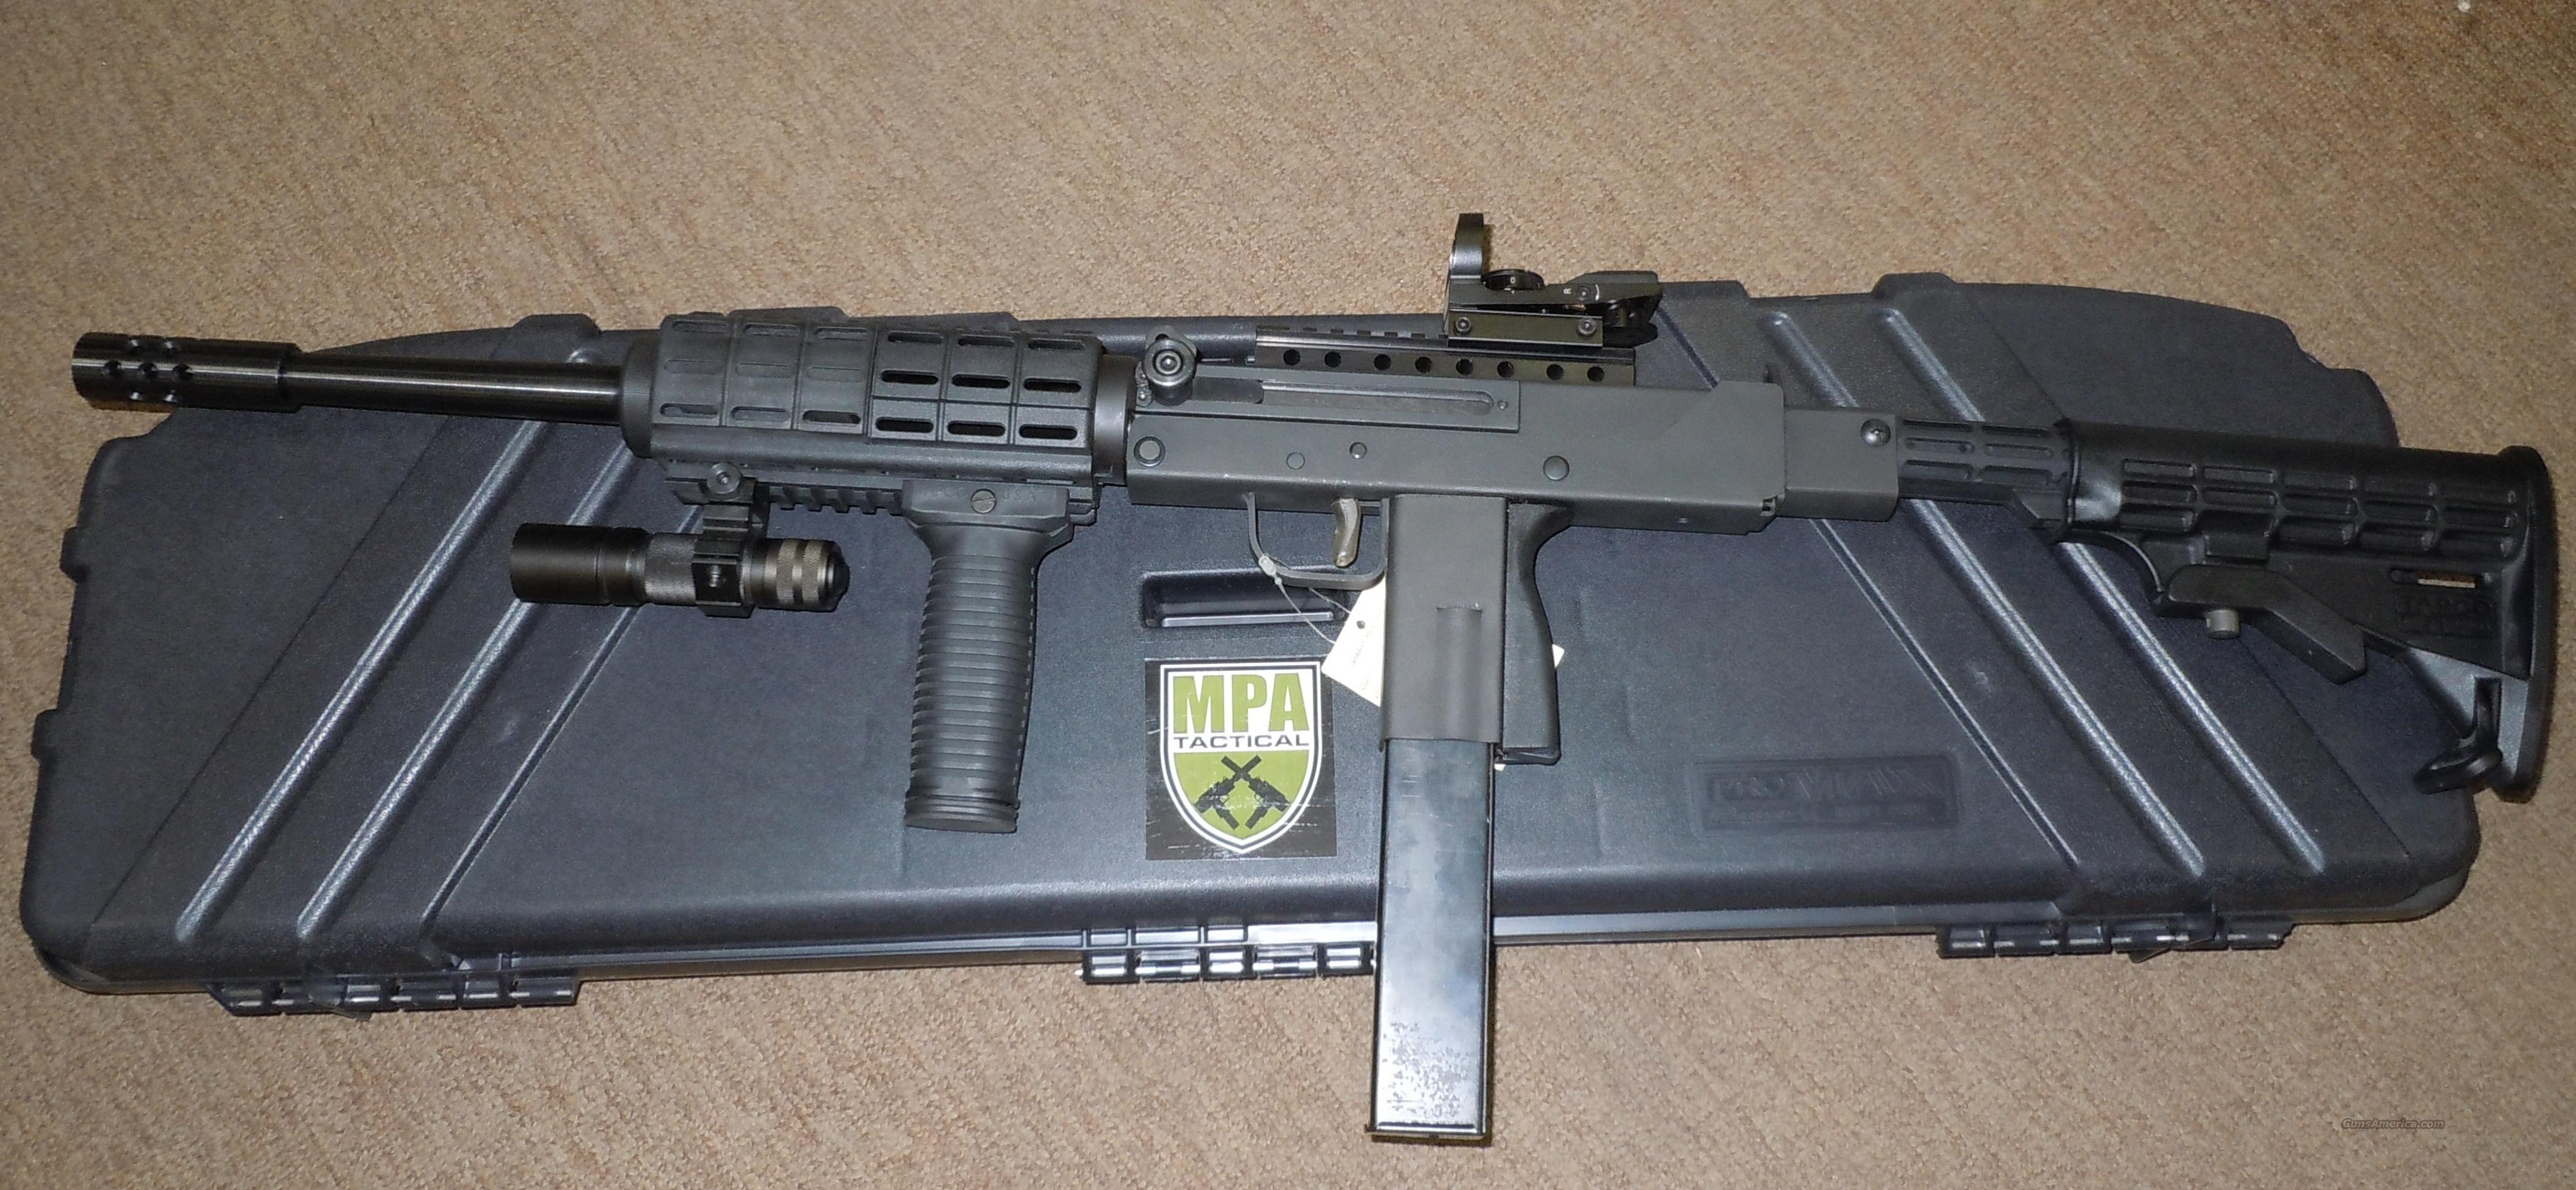 MASTERPIECE ARMS MPA20SST-X 9MM CARBINE W/ AR STYLE COLLAPSIBLE STOCK